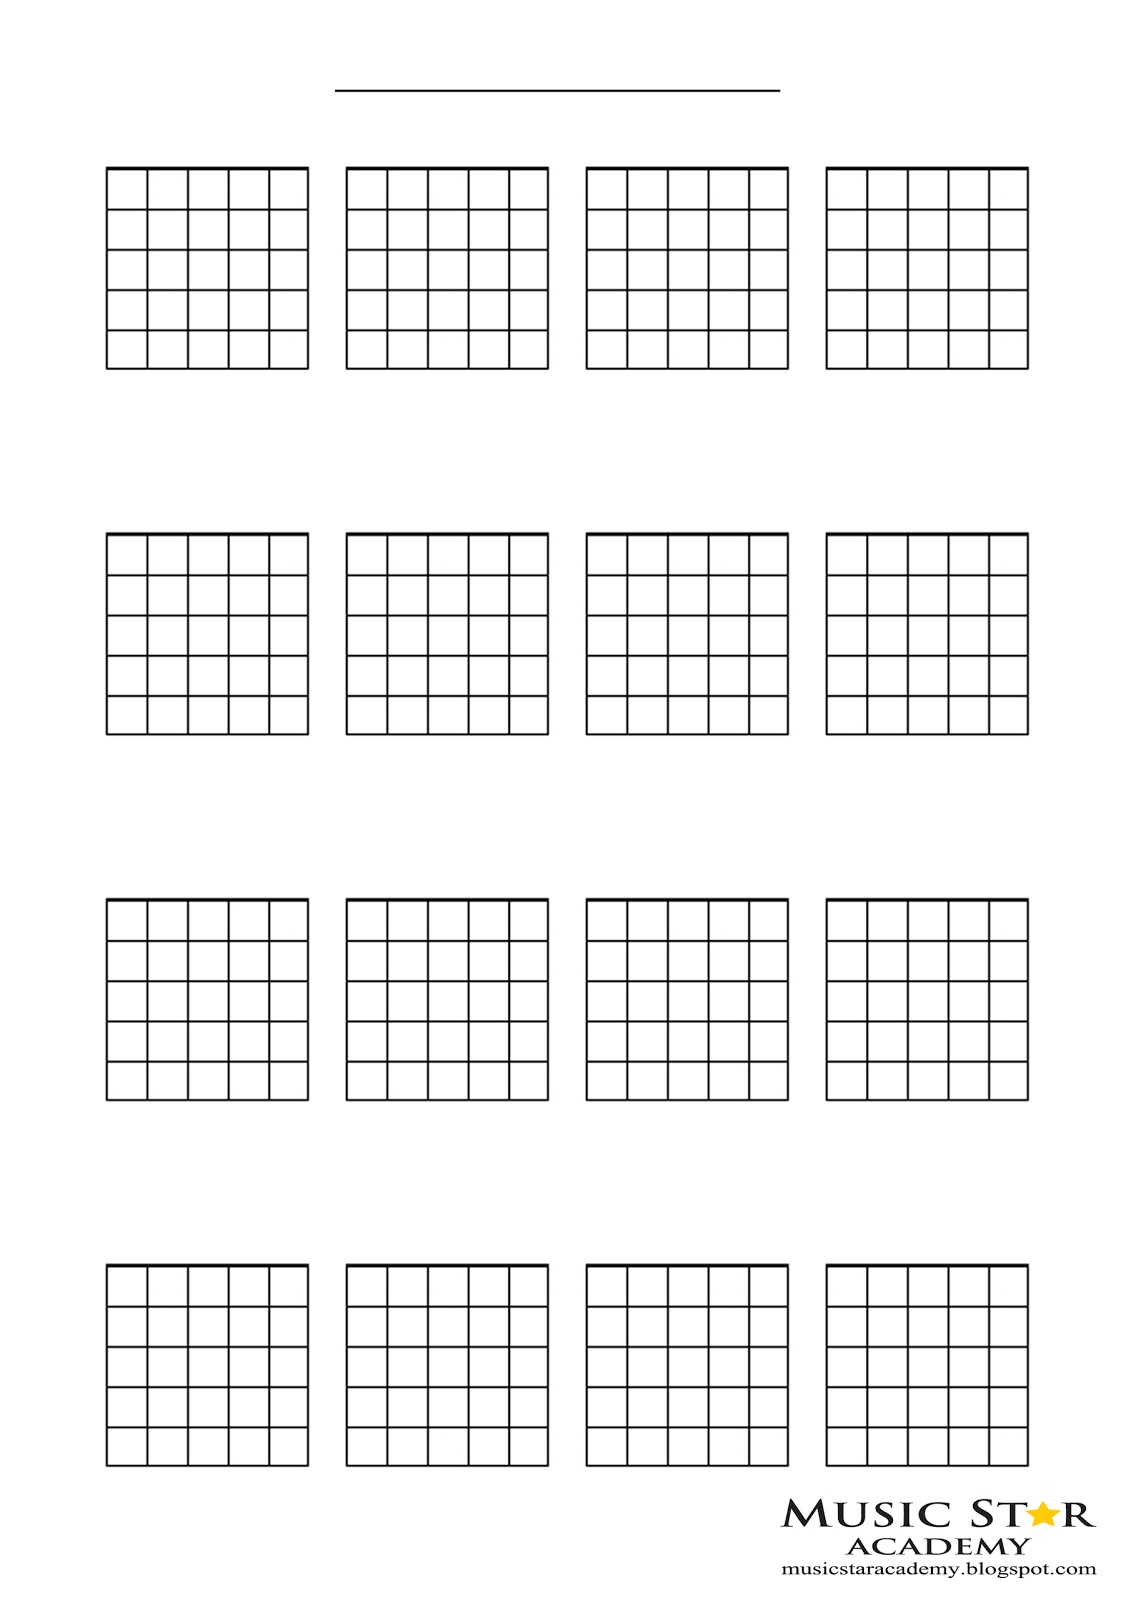 Music star academy free downloads blank chord chart for you new chords hexwebz Gallery